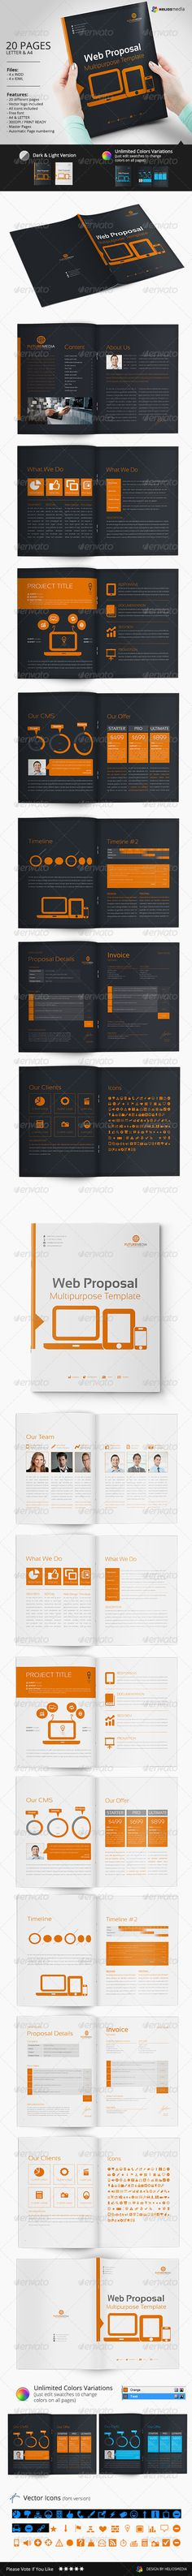 Project Proposal Letter size, Templates and Proposals - best proposal templates